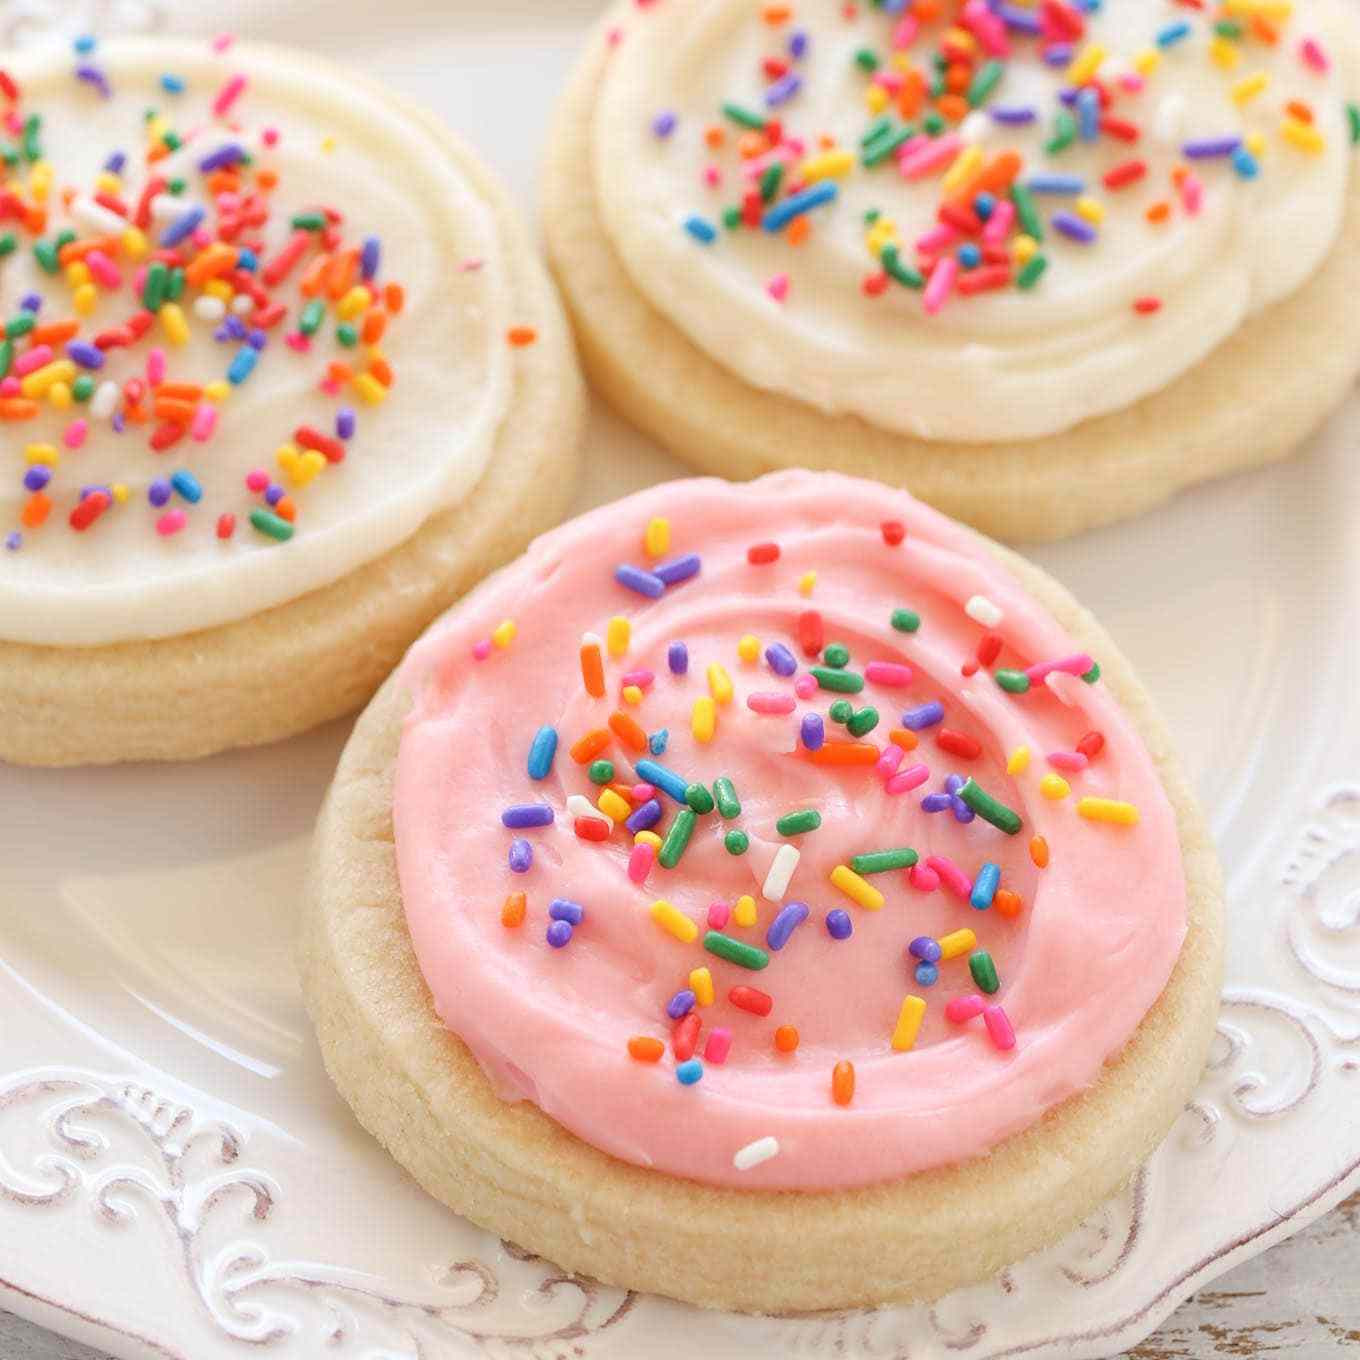 Icing Recipe For Sugar Cookies  Soft Cut Out Sugar Cookies with Cream Cheese Frosting